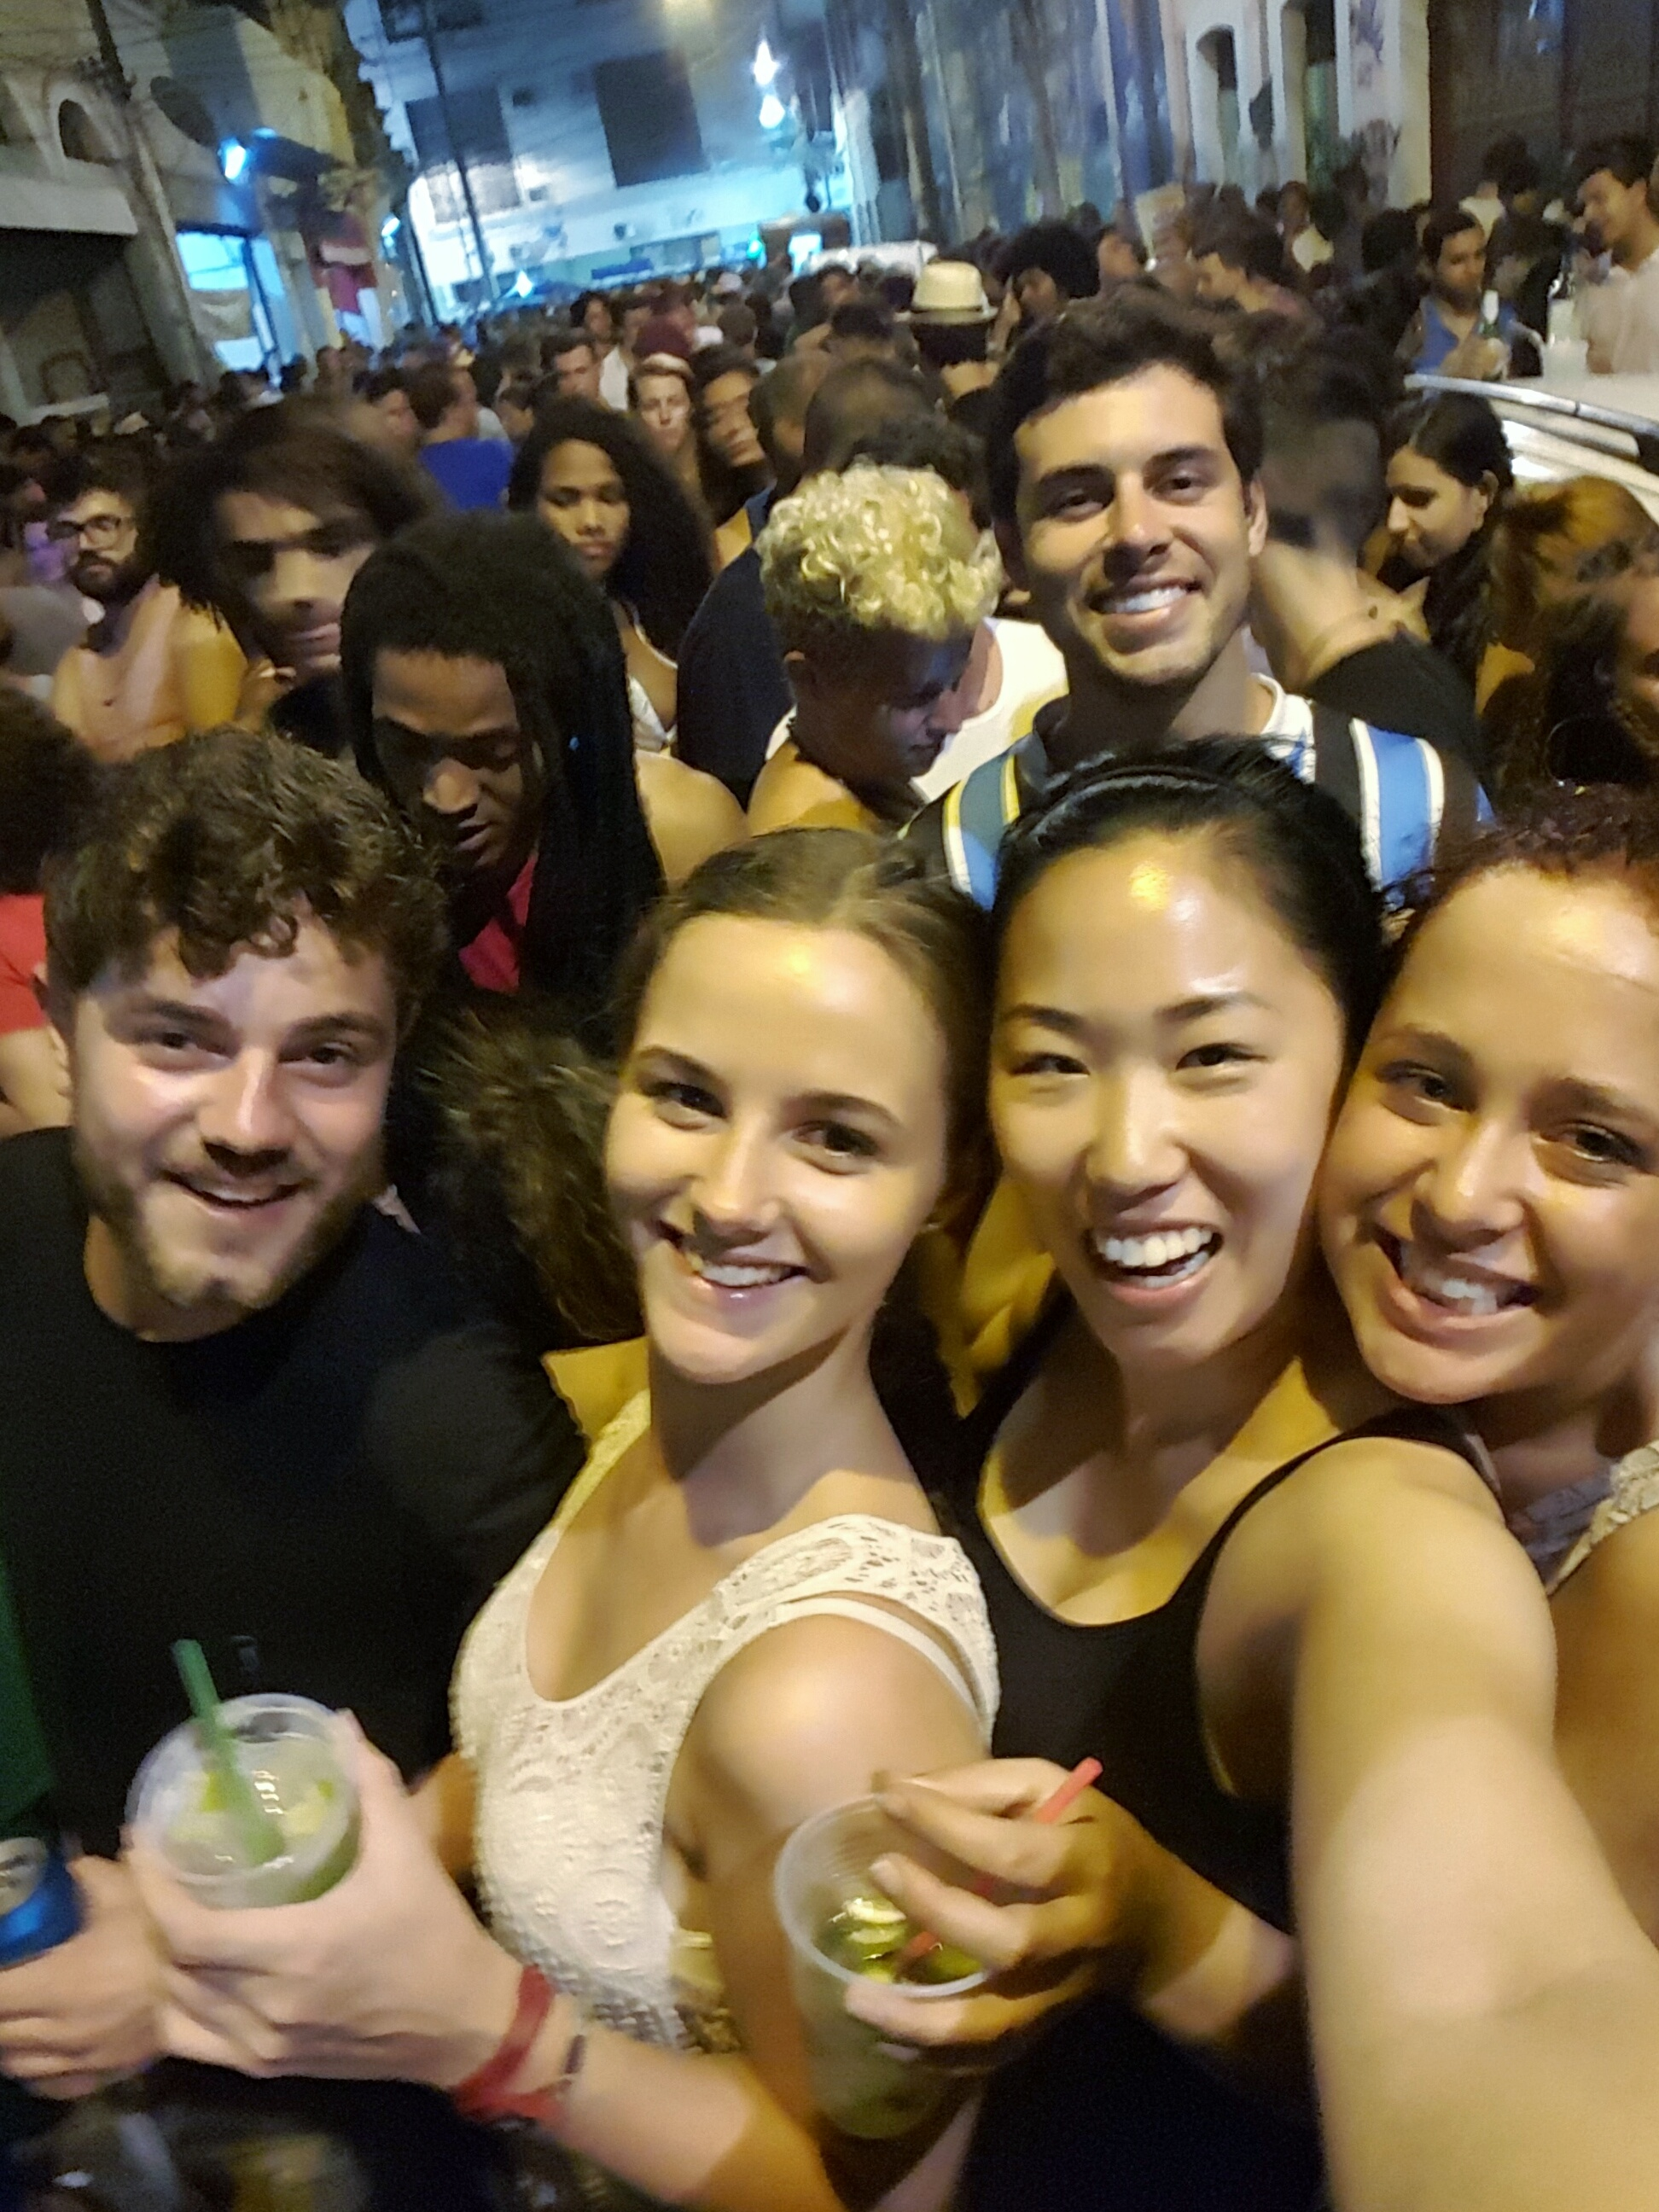 Samba party in the streets of Centro